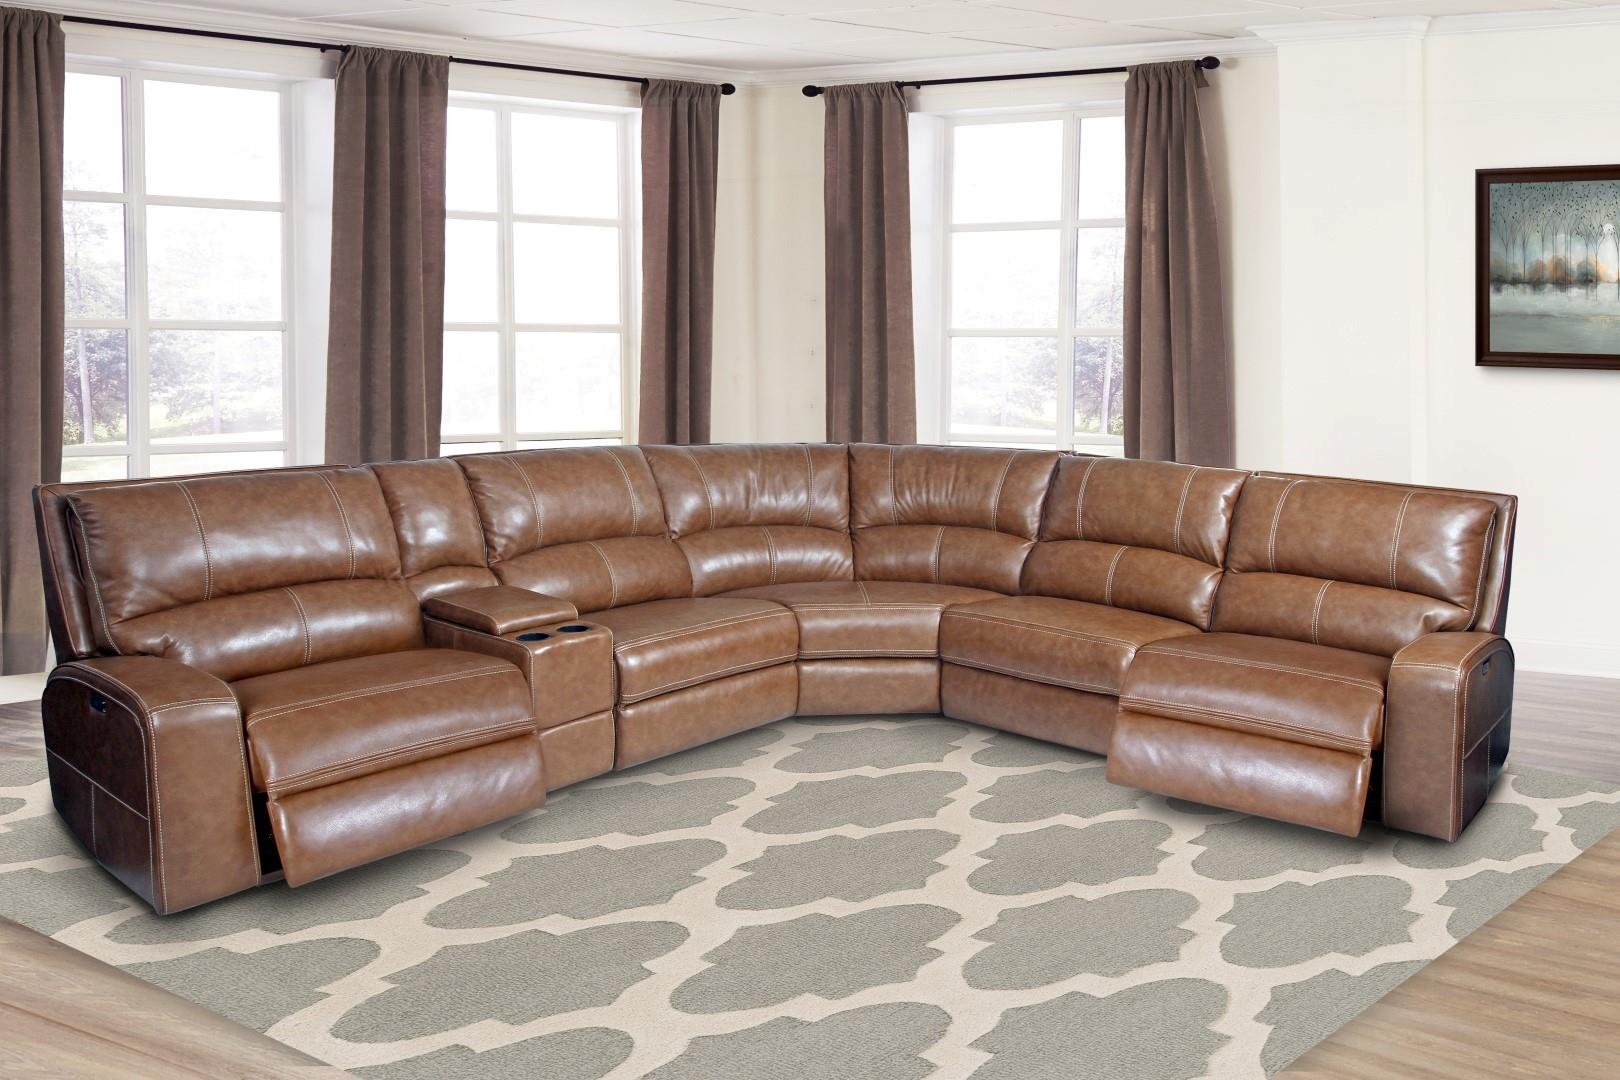 Swift Leather Modular Sectional Image